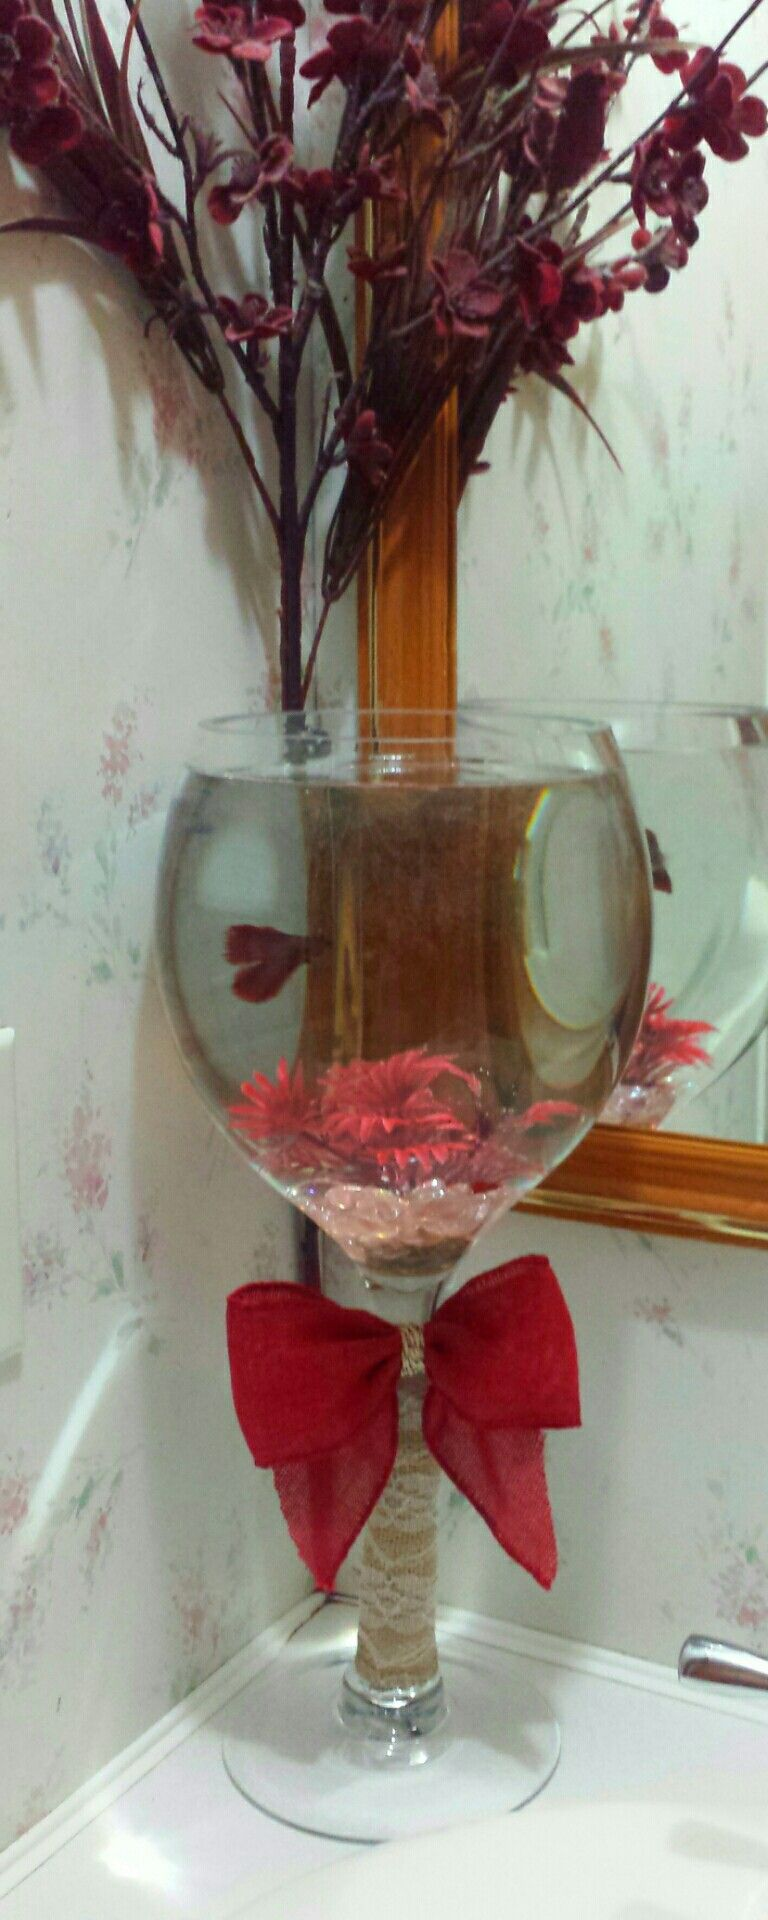 My Diy Wine Glass Betta Fish Bowl Added A Lil Lace Burlap A Big Red Burlap Bow Voila My Betta Looks Beau Glass Fish Bowl Diy Wine Glass Betta Fish